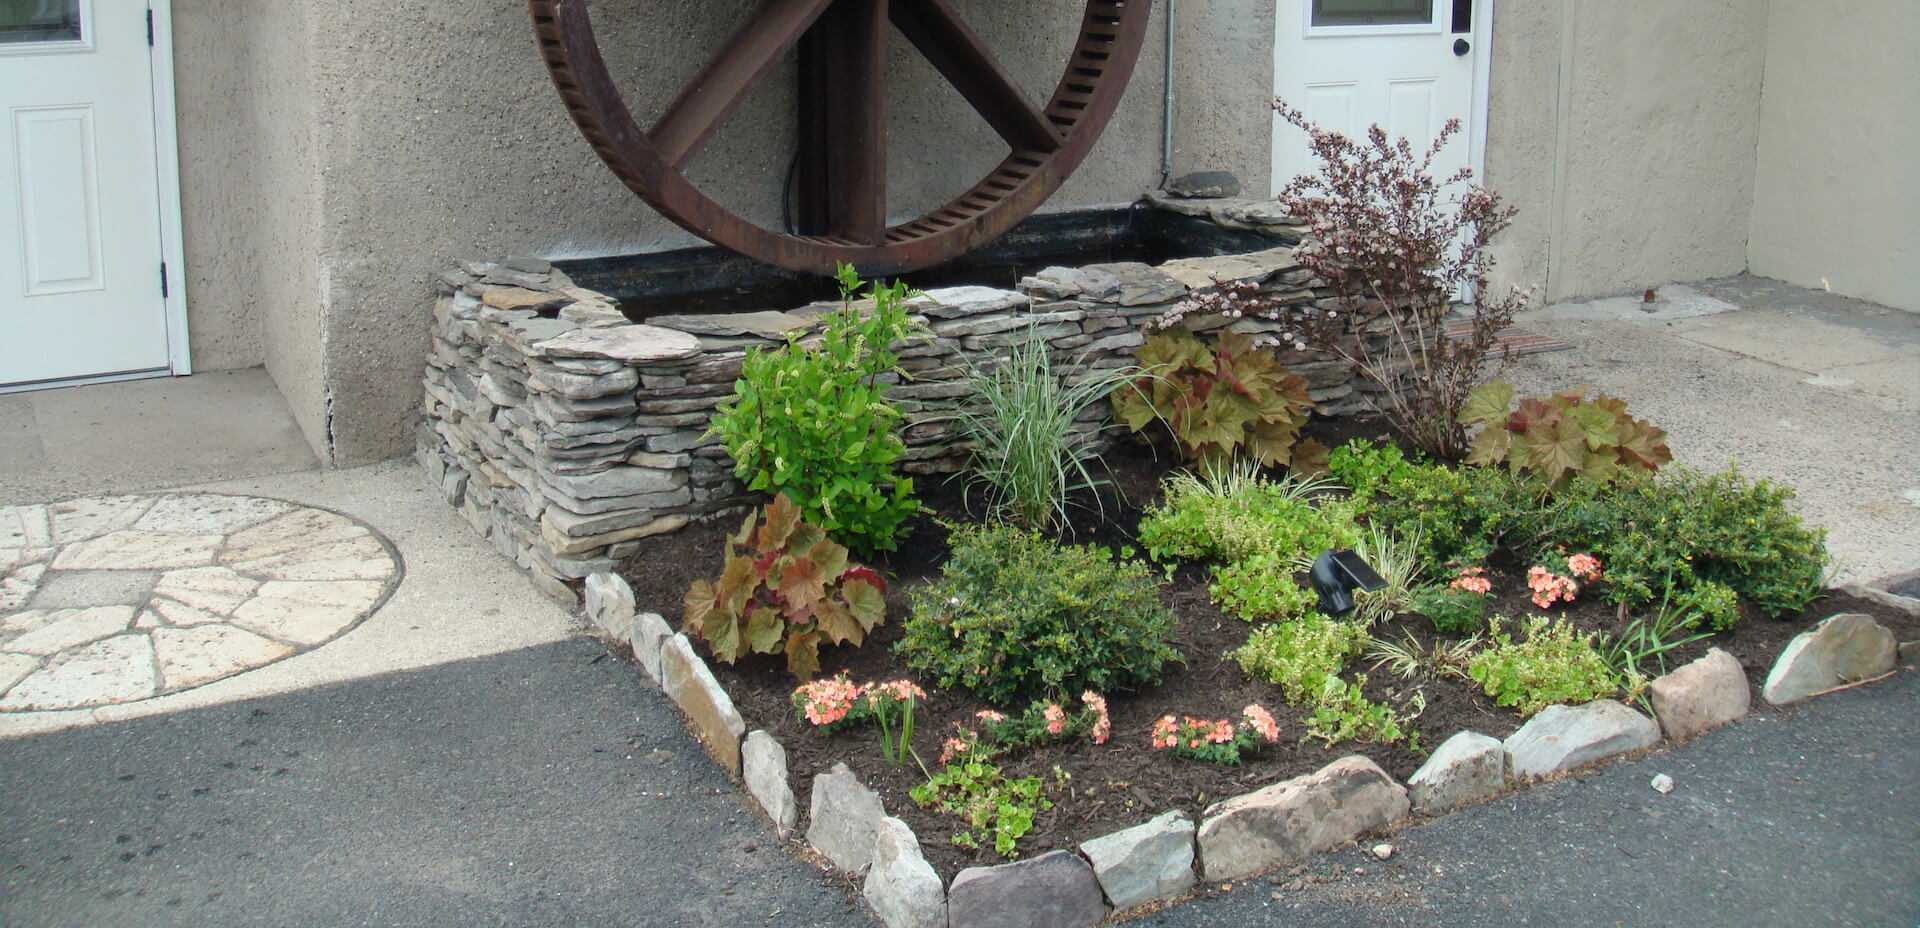 flower bed in front of old wheel